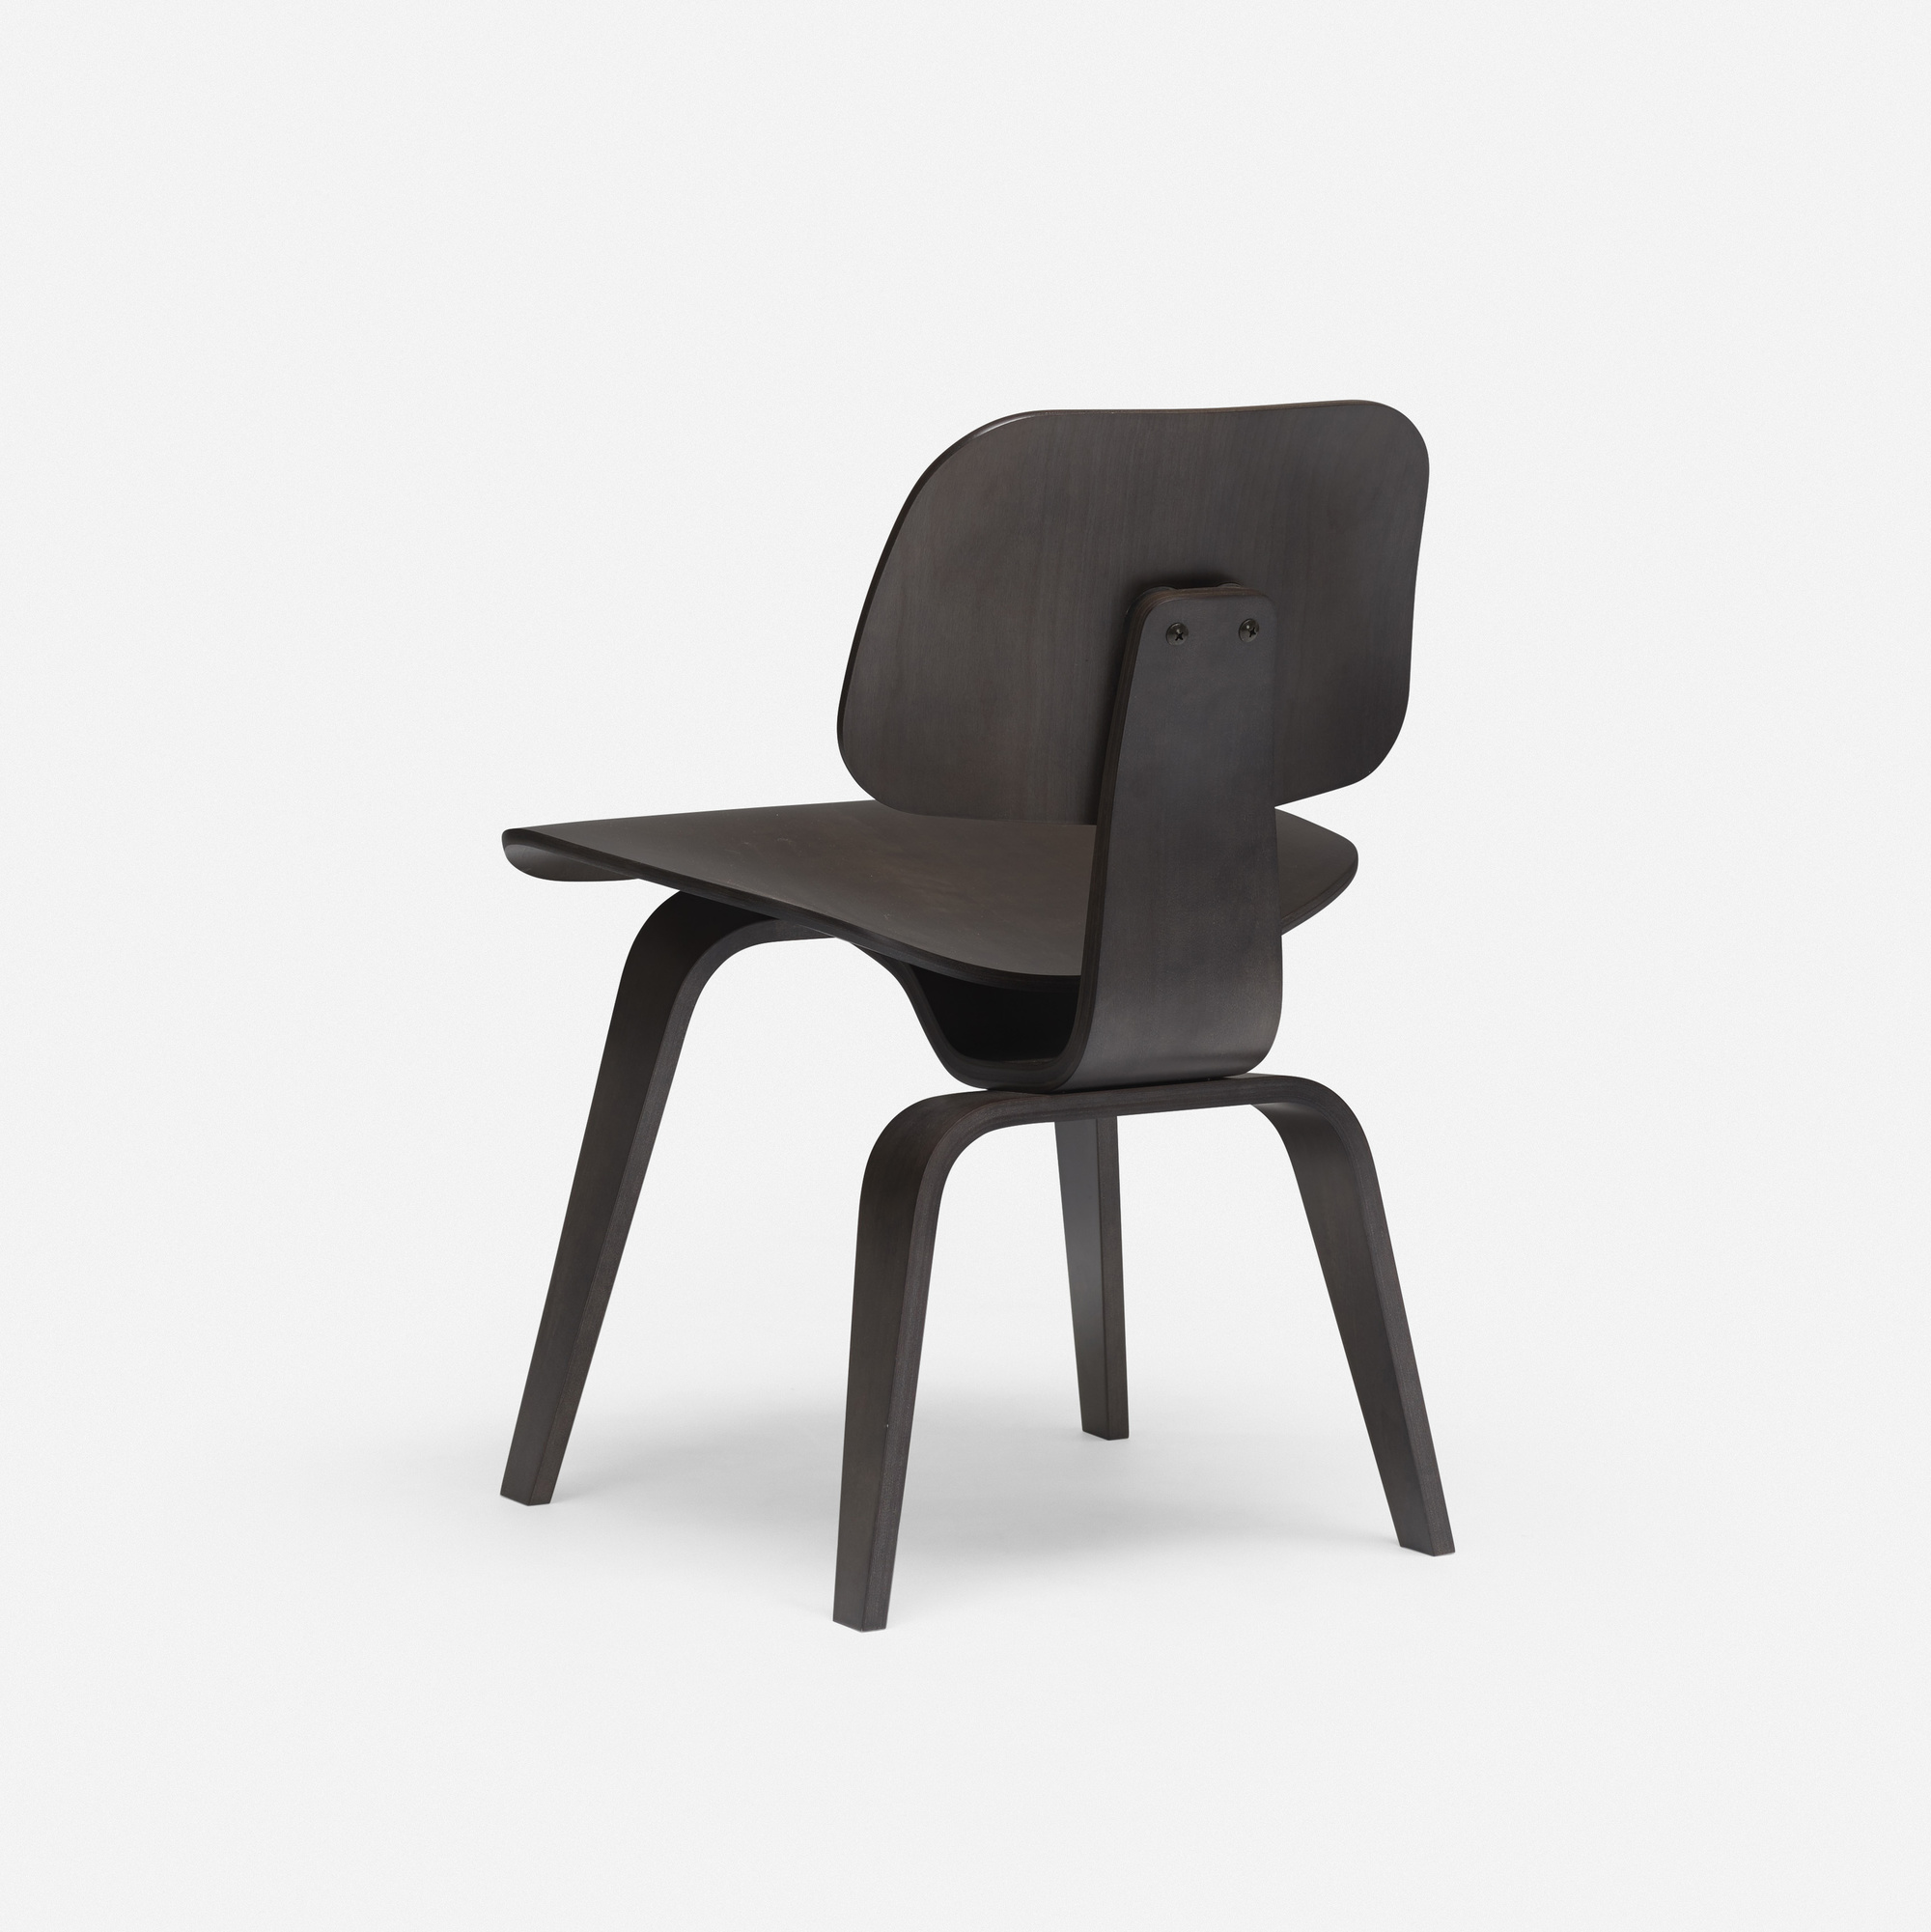 270: Charles and Ray Eames / DCW (1 of 4)